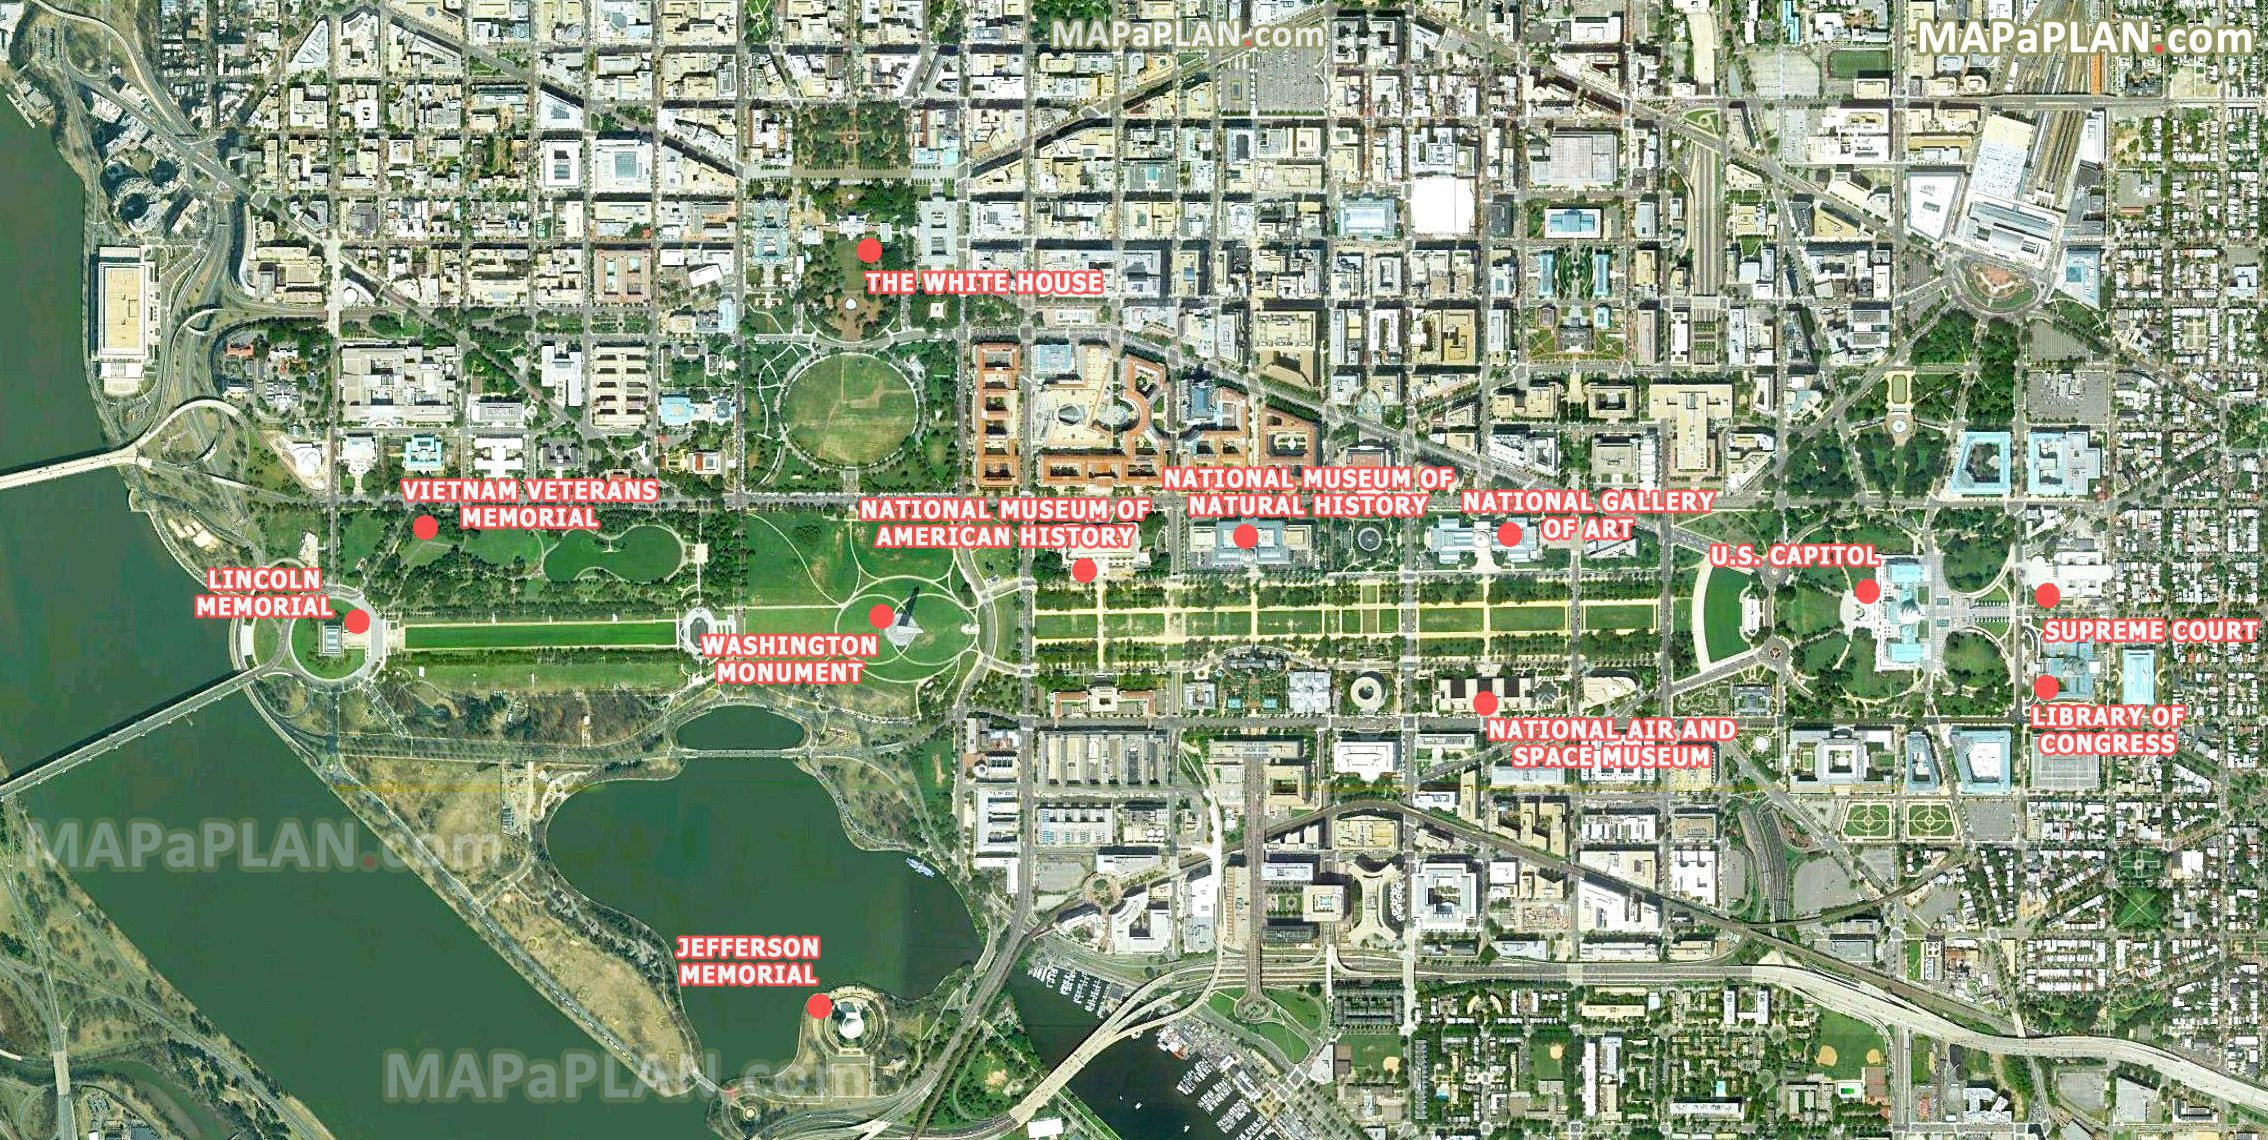 washingtondctoptouristattractionsmap04satelliteimage – Washington Tourist Attractions Map